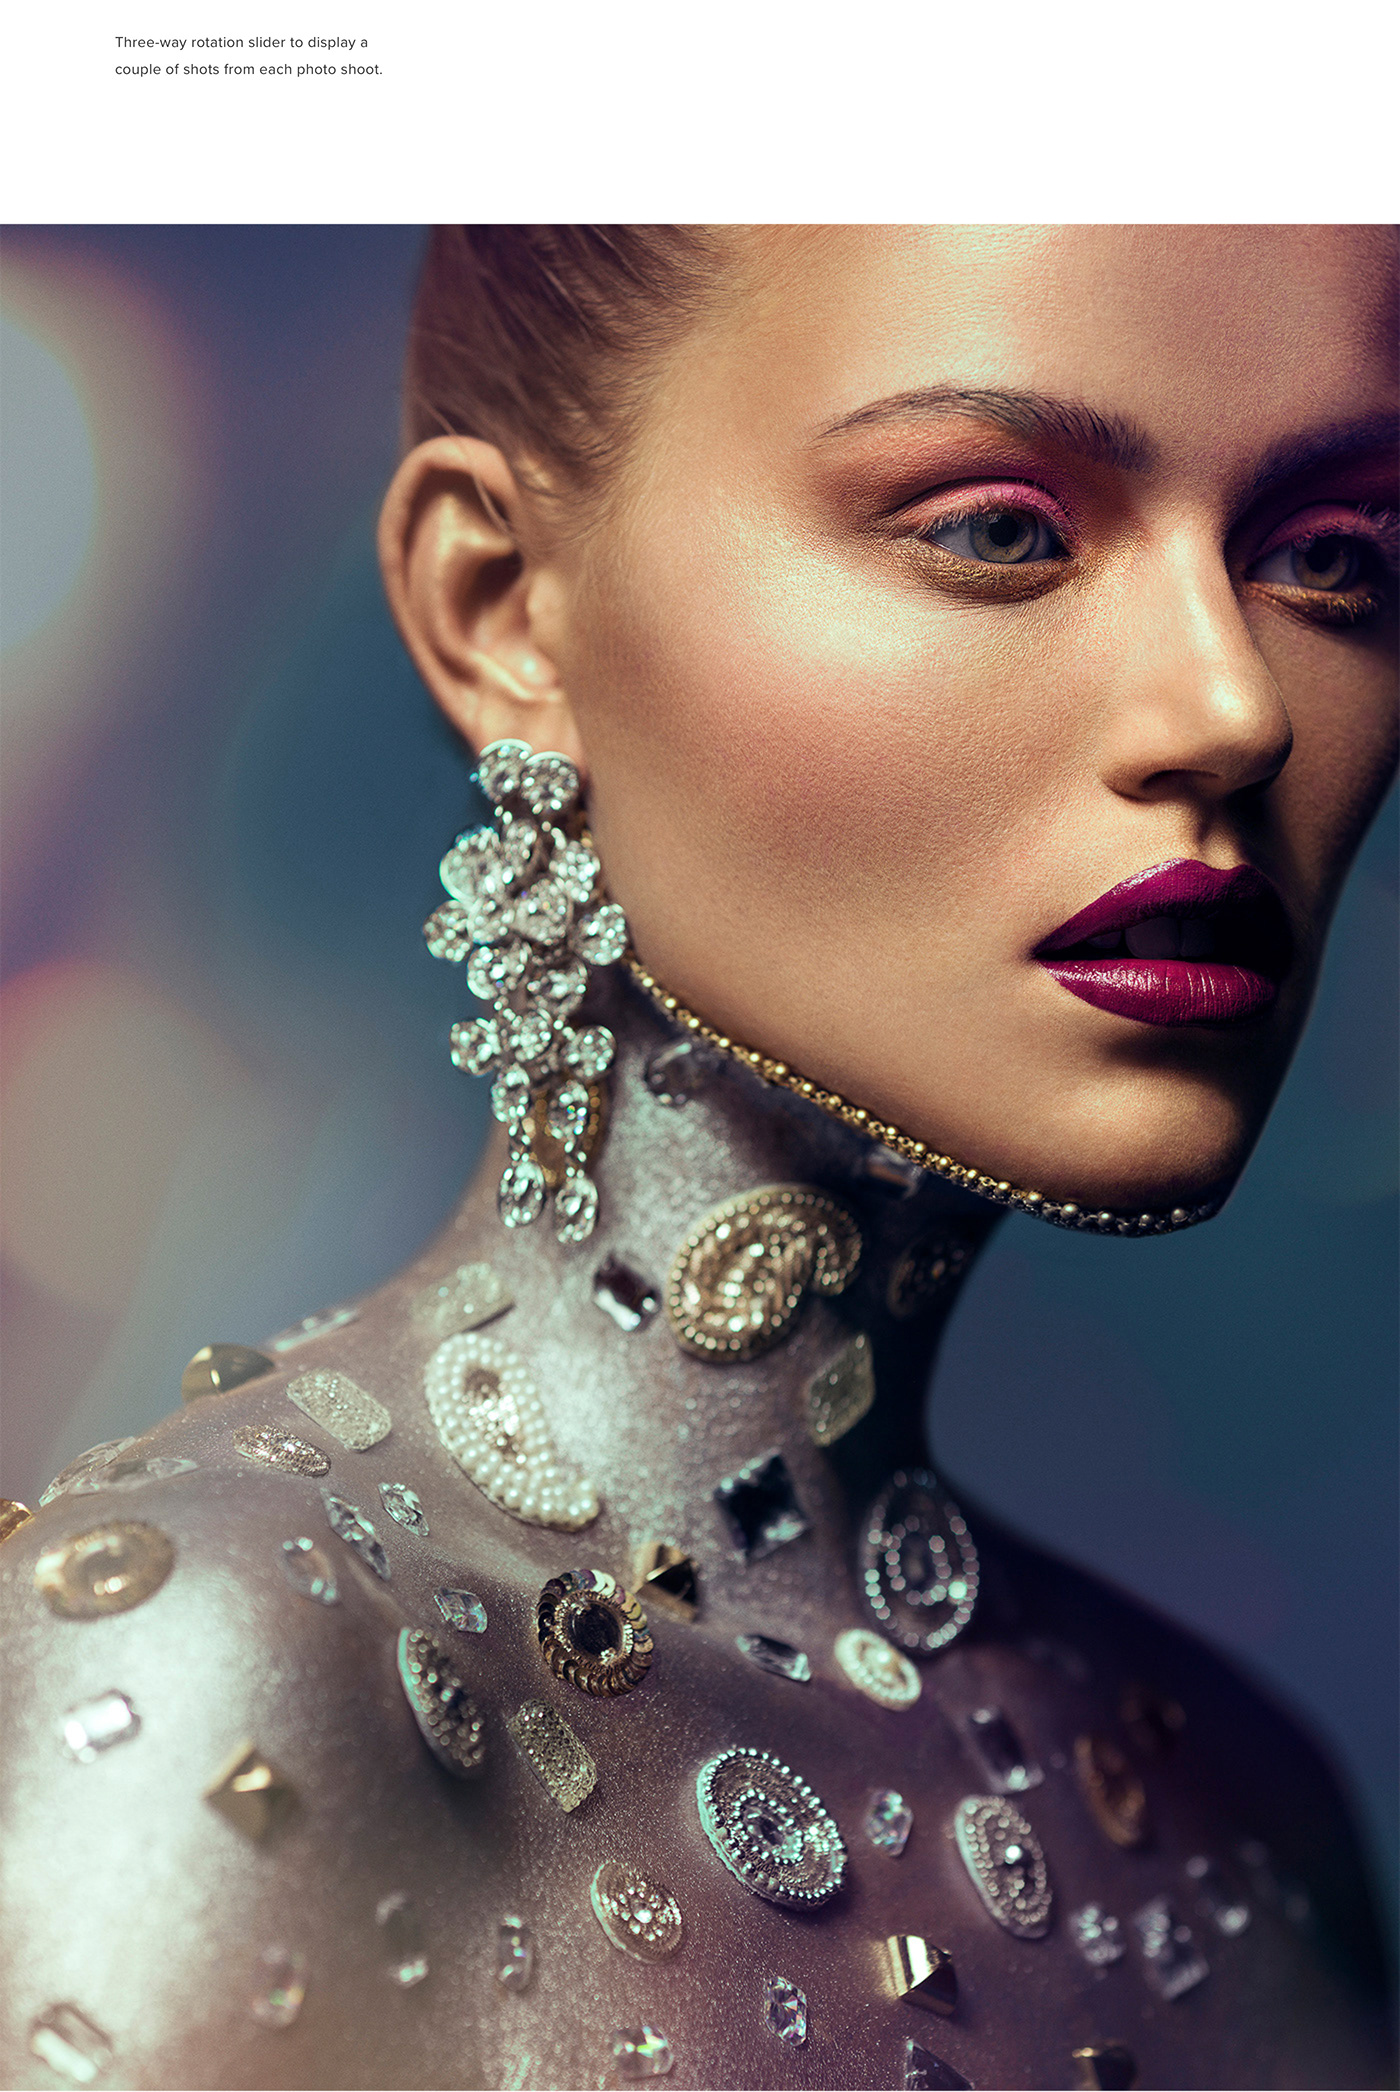 Fashion photography with a beautiful posing model wearing diamonds and colorful make up